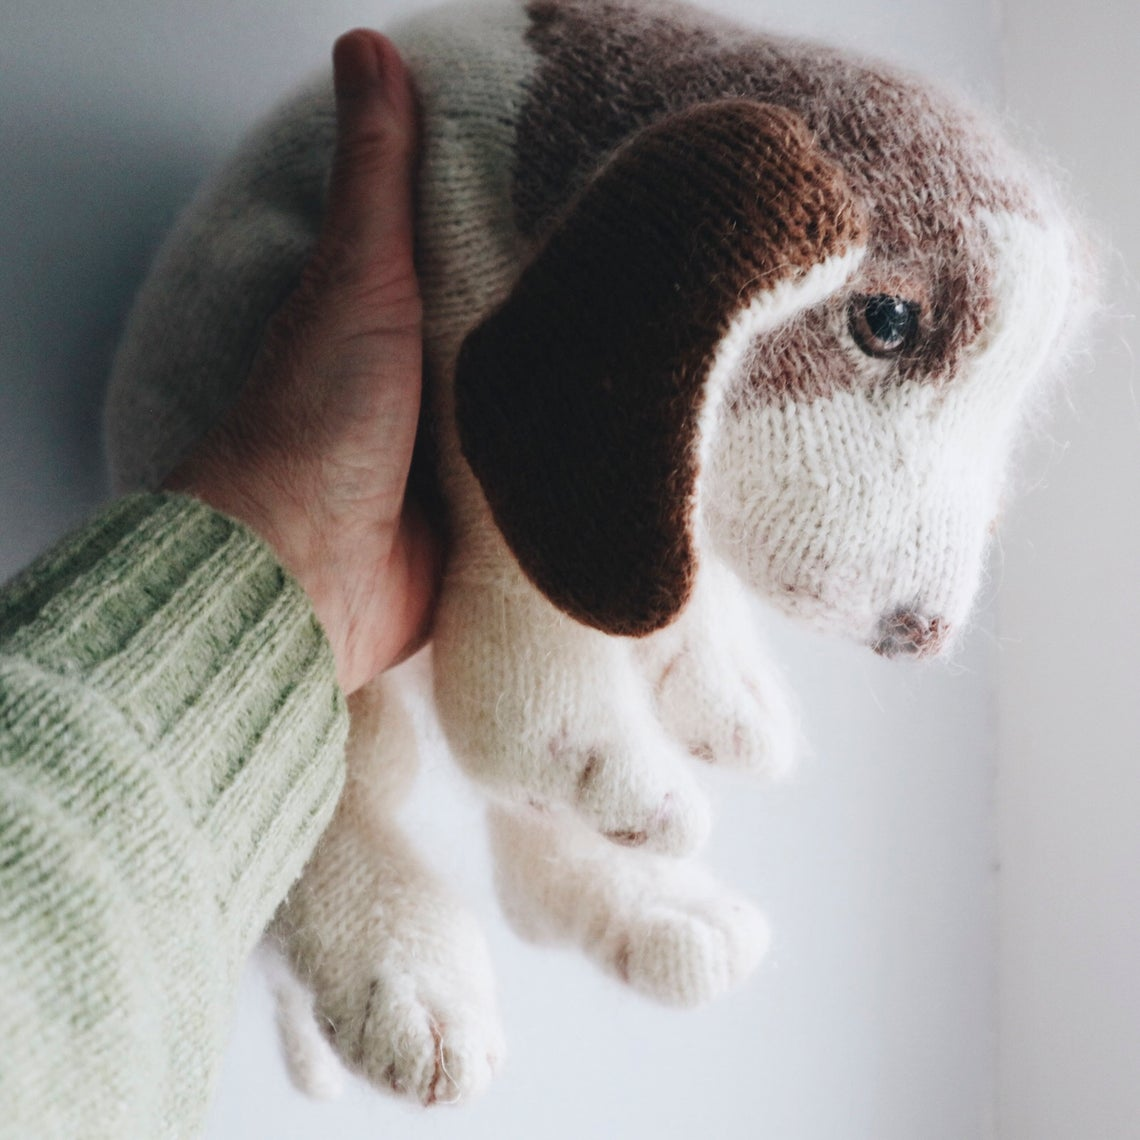 Knit a Cute Beagle Puppy, Pattern Designed By Claire Garland